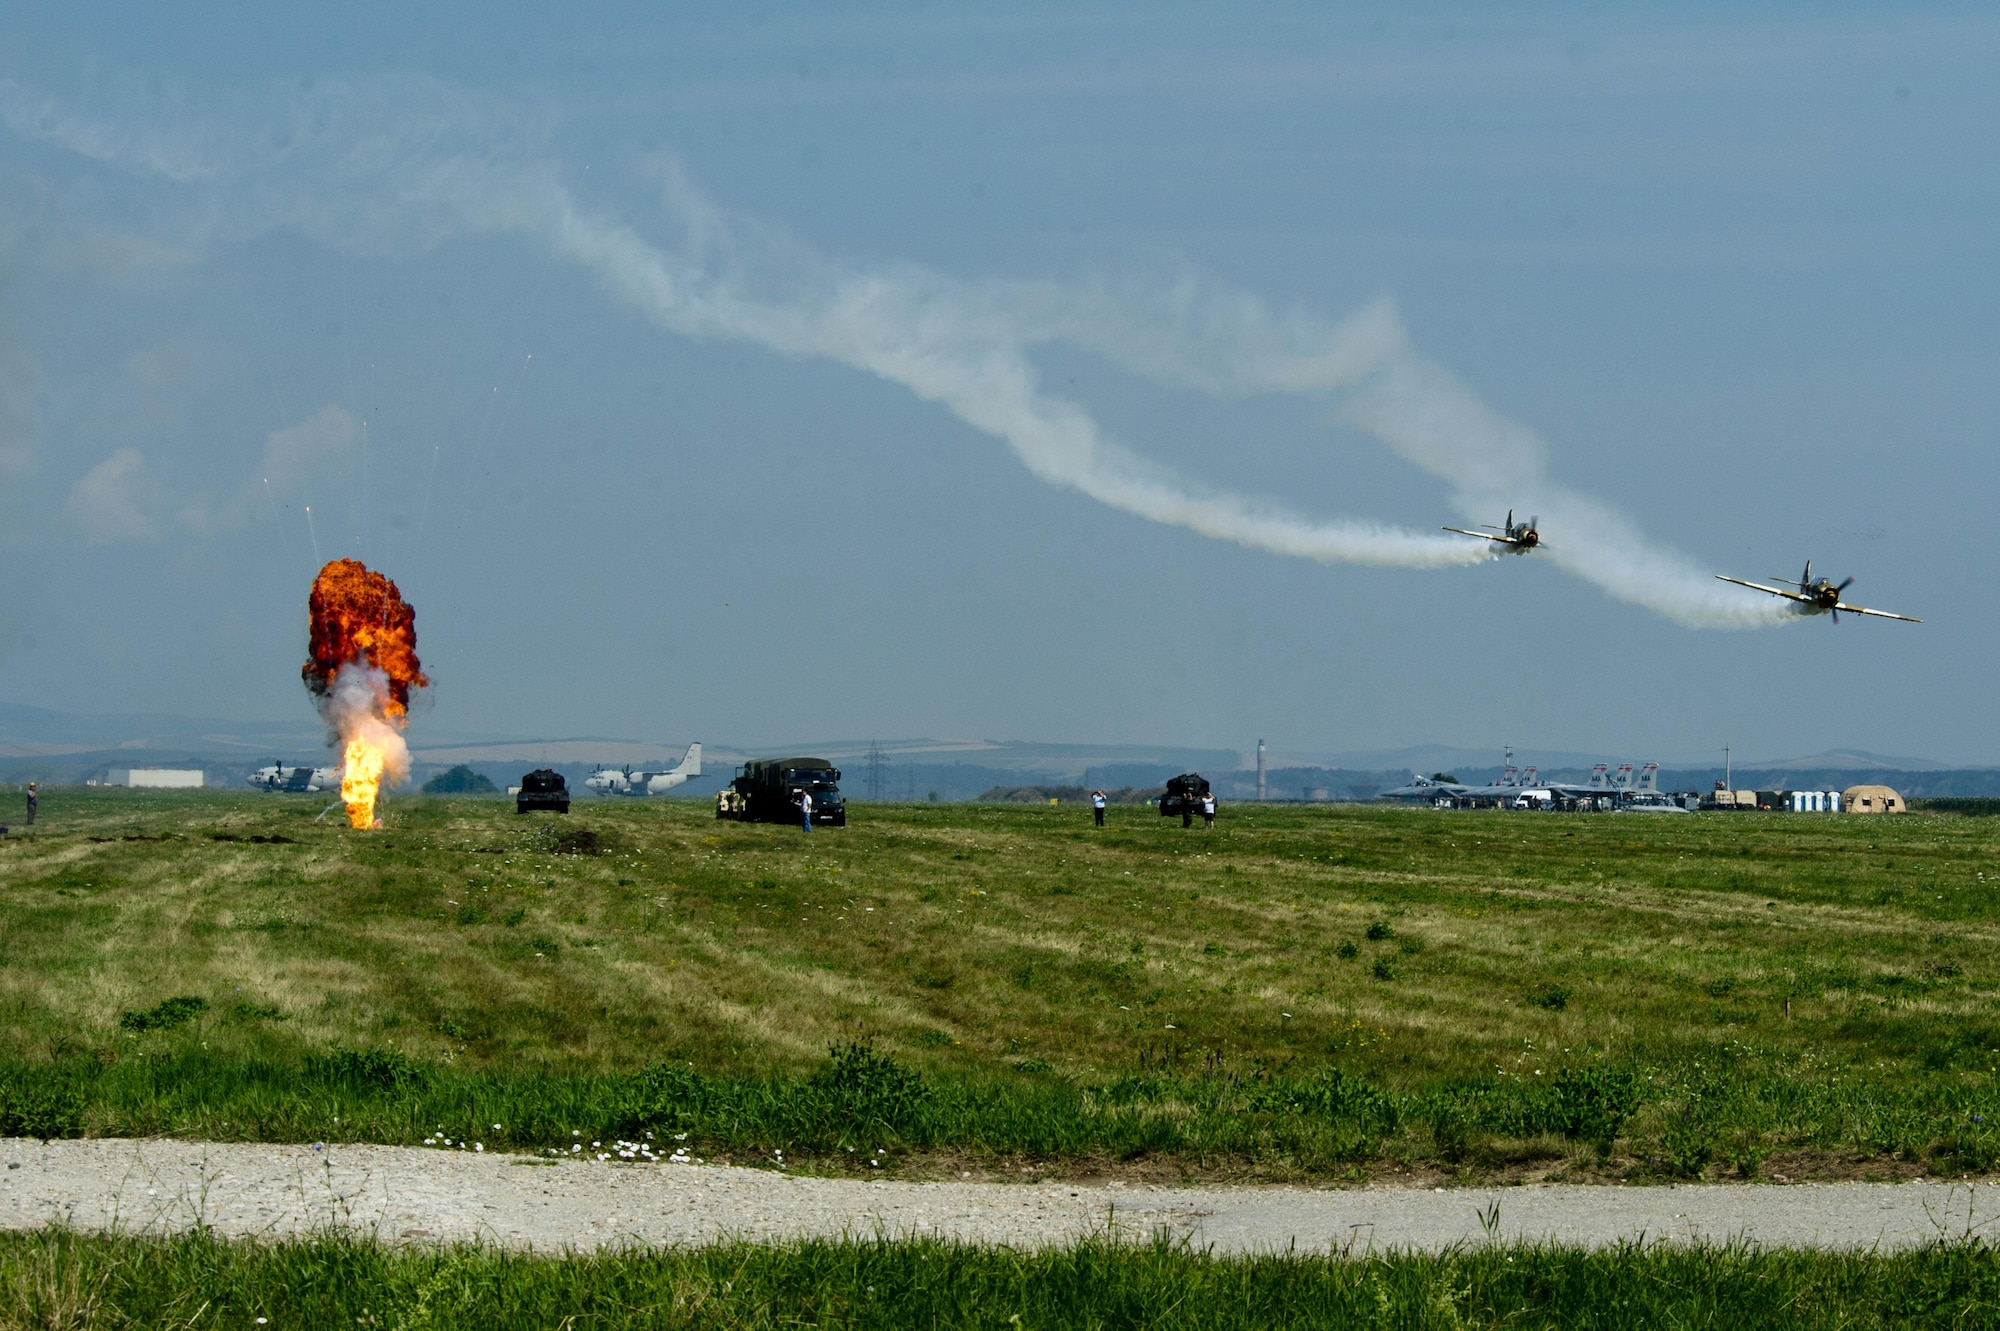 Two specialized Yakovlev Yak-52 trainer aircraft participate in a simulated bombing drill during the Romanian air force's 71st Air Base's air show and open house at Campia Turzii, Romania, July 23, 2016. The aviation demonstration took place during the middle of the U.S. Air Force's 194th Expeditionary Fighter Squadron's six-month long theater security package deployment to Europe in support of Operation Atlantic Resolve, which aims to bolster the U.S.'s continued commitment to the collective security of NATO and dedication to the enduring peace and stability in the region. The unit, comprised of more than 200 CANG Airmen from the 144th Fighter Wing at Fresno ANG Base, Calif., as well as U.S. Air Force Airmen from the 52nd Fighter Wing at Spangdahlem Air Base, Germany, piloted, maintained and supported the deployment of 12 F-15Cs Eagle fighter aircraft throughout nations like Romania, Iceland, the United Kingdom, the Netherlands, Estonia and among others. The F-15Cs took to the skies alongside the 71st AB's MiG-21 fighter aircraft and Puma helicopters for both the airshow, the second engagement of its kind at Campia Turzii under Operation Atlantic Resolve, and the bilateral flight training, also known as Dacian Eagle 2016. (U.S. Air Force photo by Staff Sgt. Joe W. McFadden/Released)